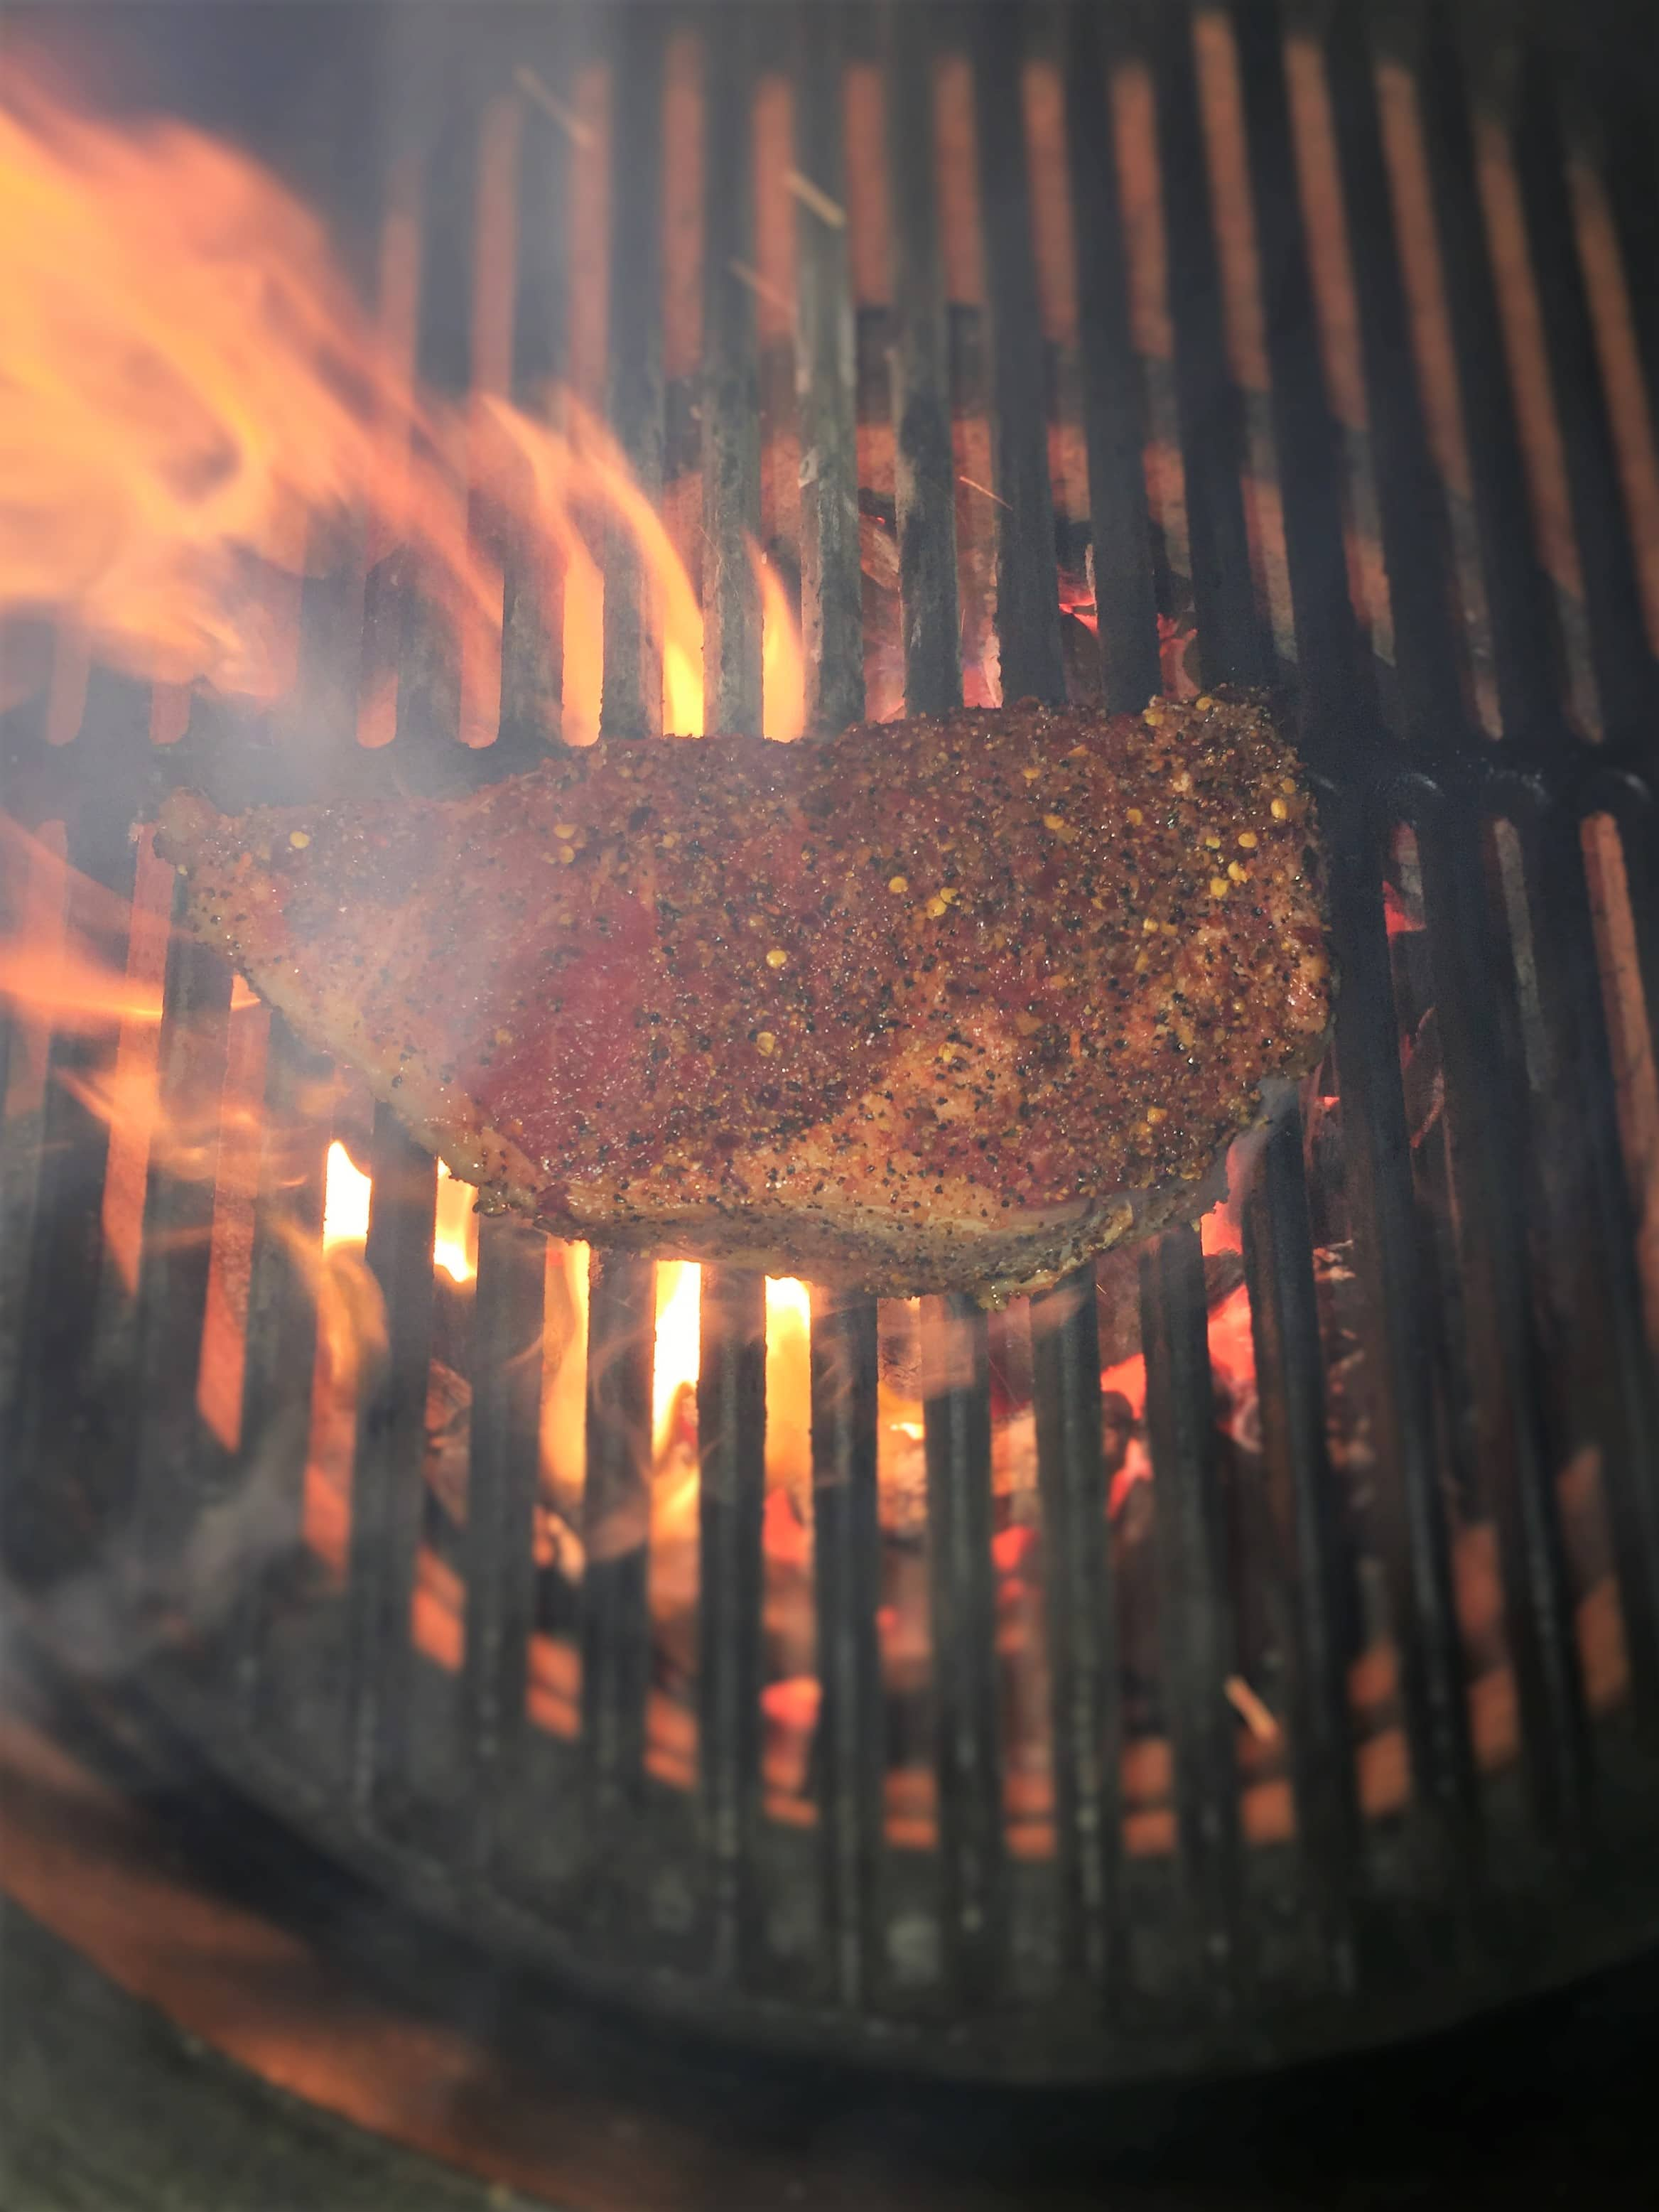 Grilling Steaks on a Charcoal Grill, Seasoning